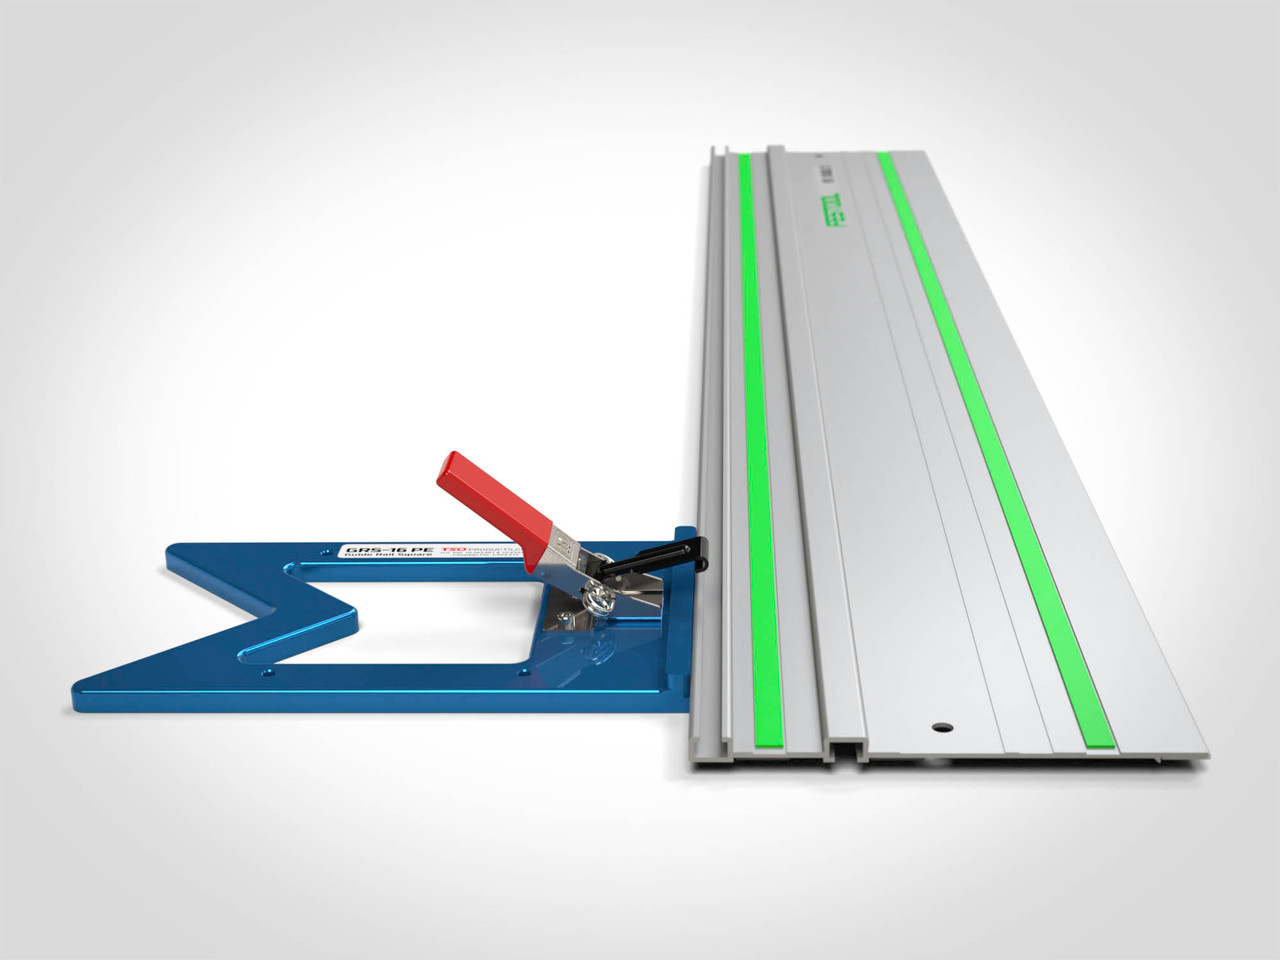 Simply slide the GRS-16 PE through the underside T-track on your guide rail, secure the clamping latch, and you're ready to cut!